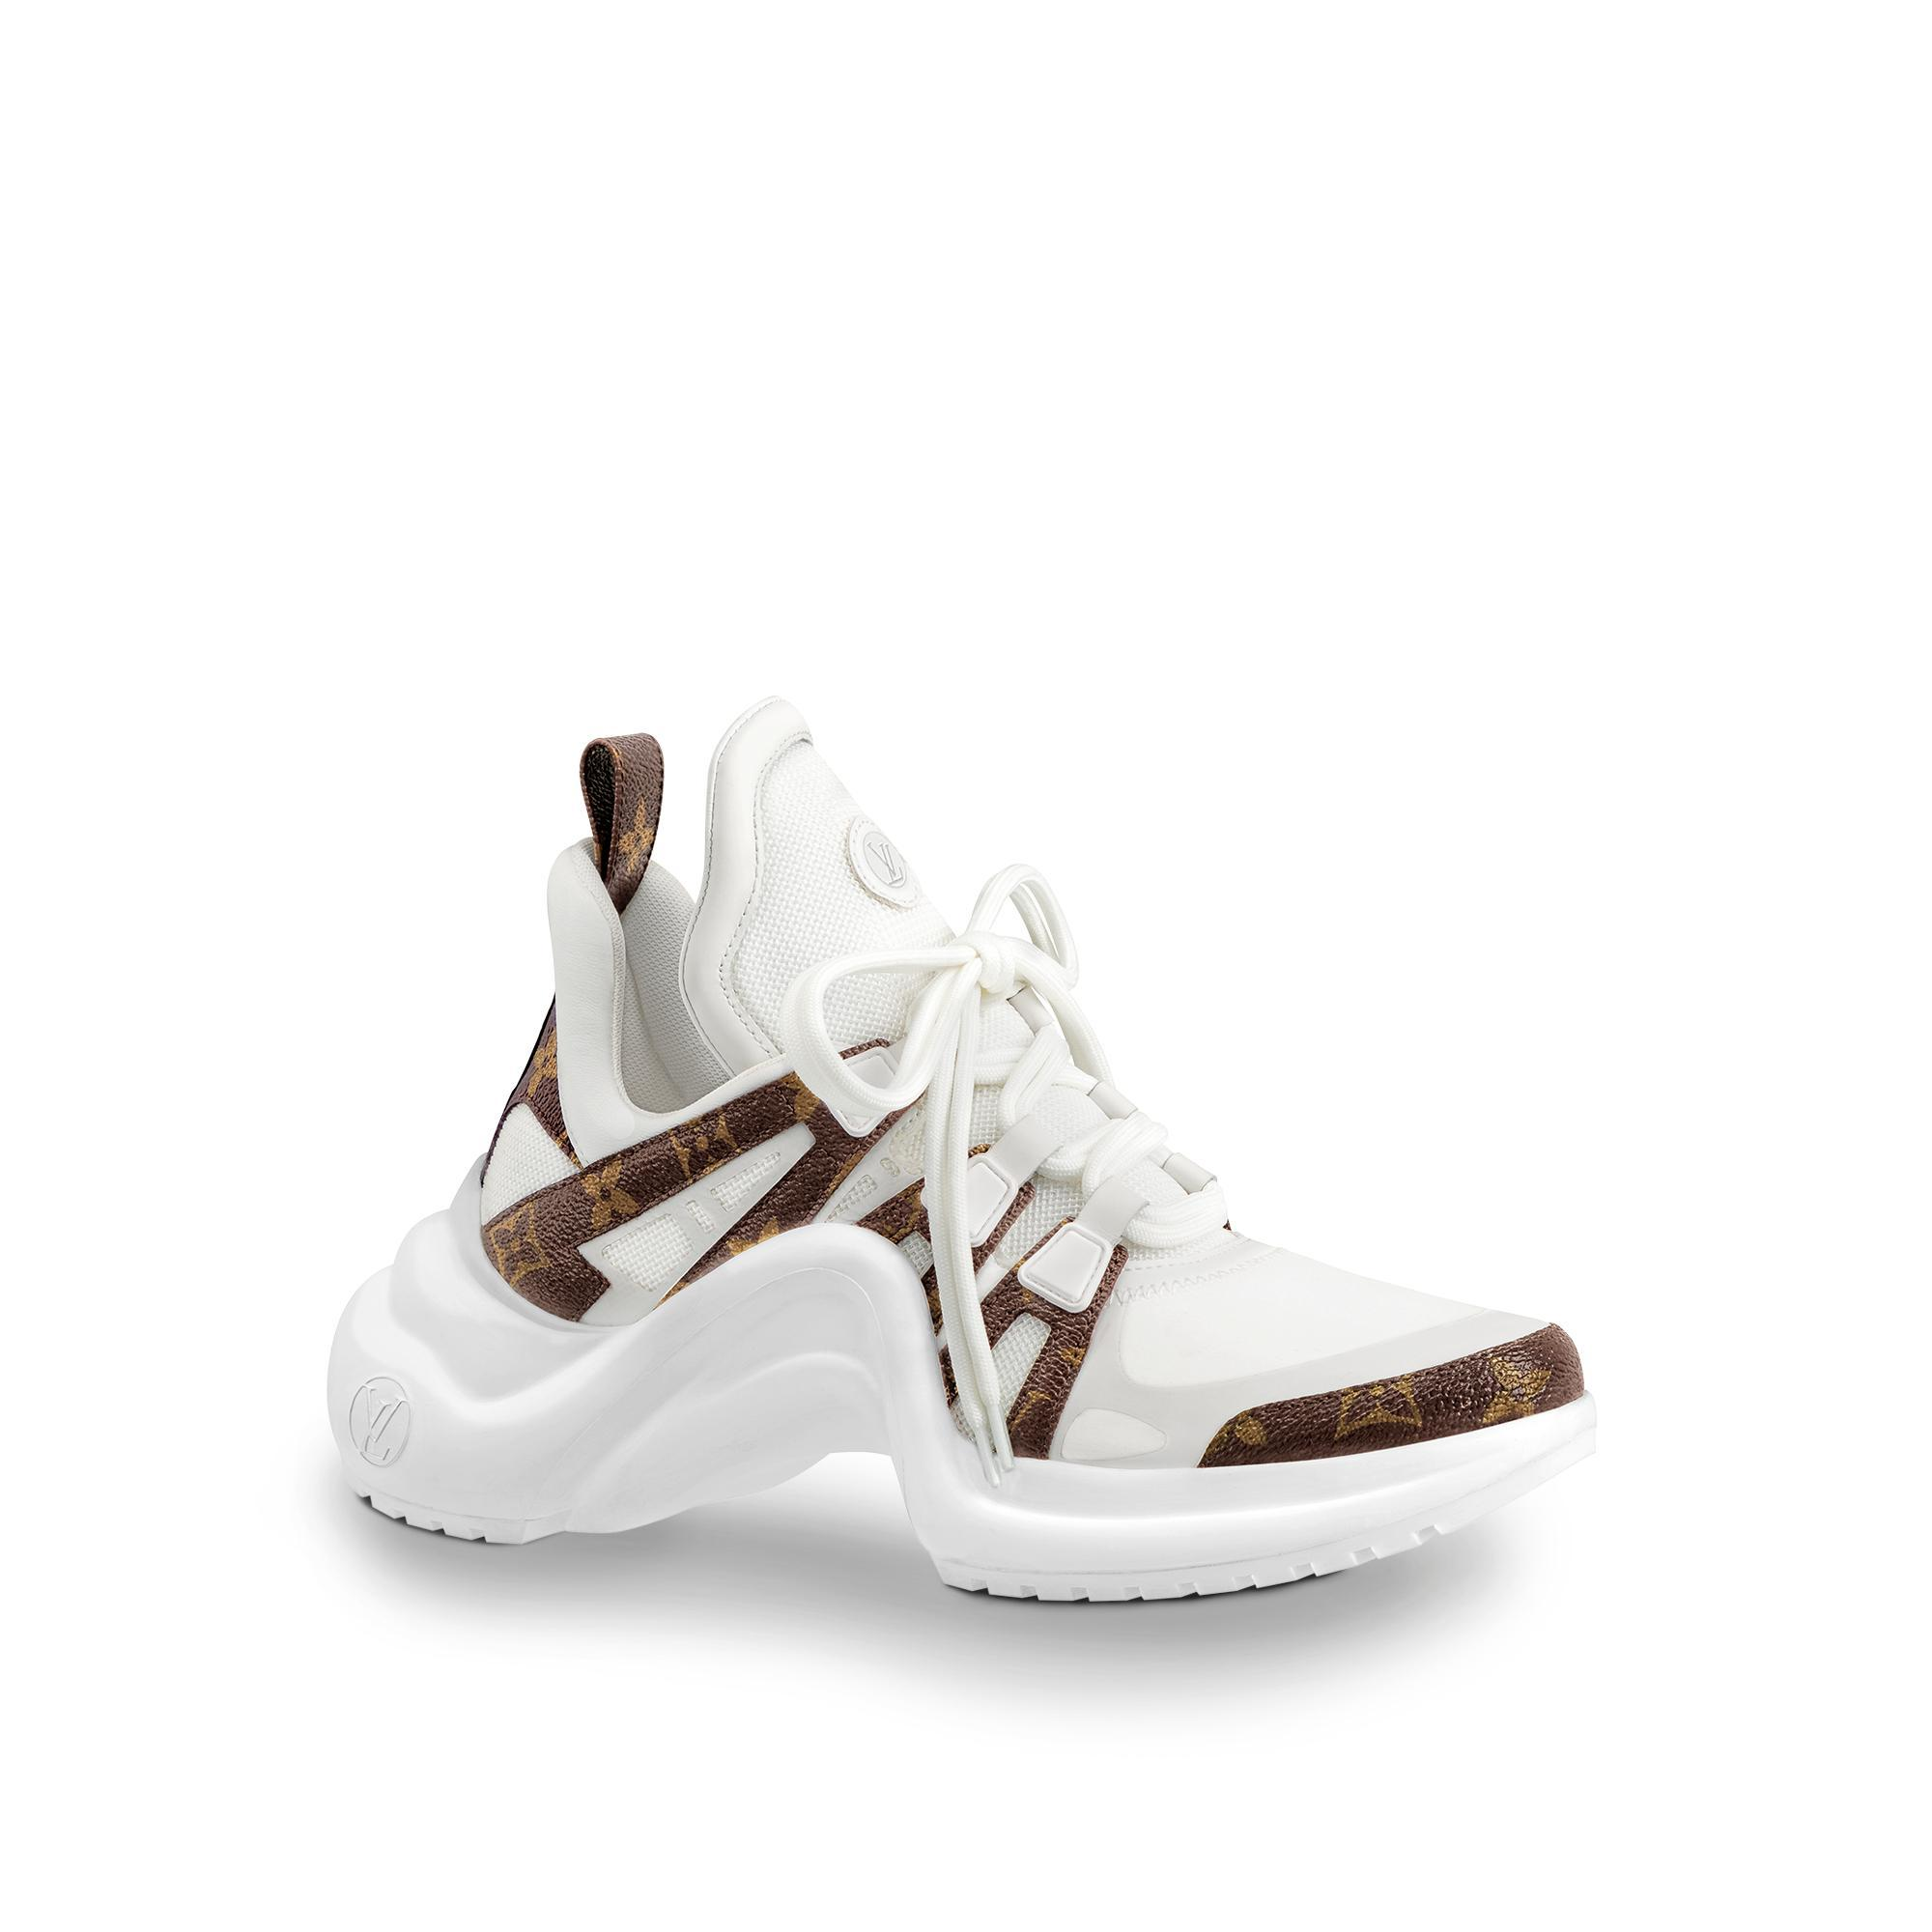 LV Archlight Sneaker in White -